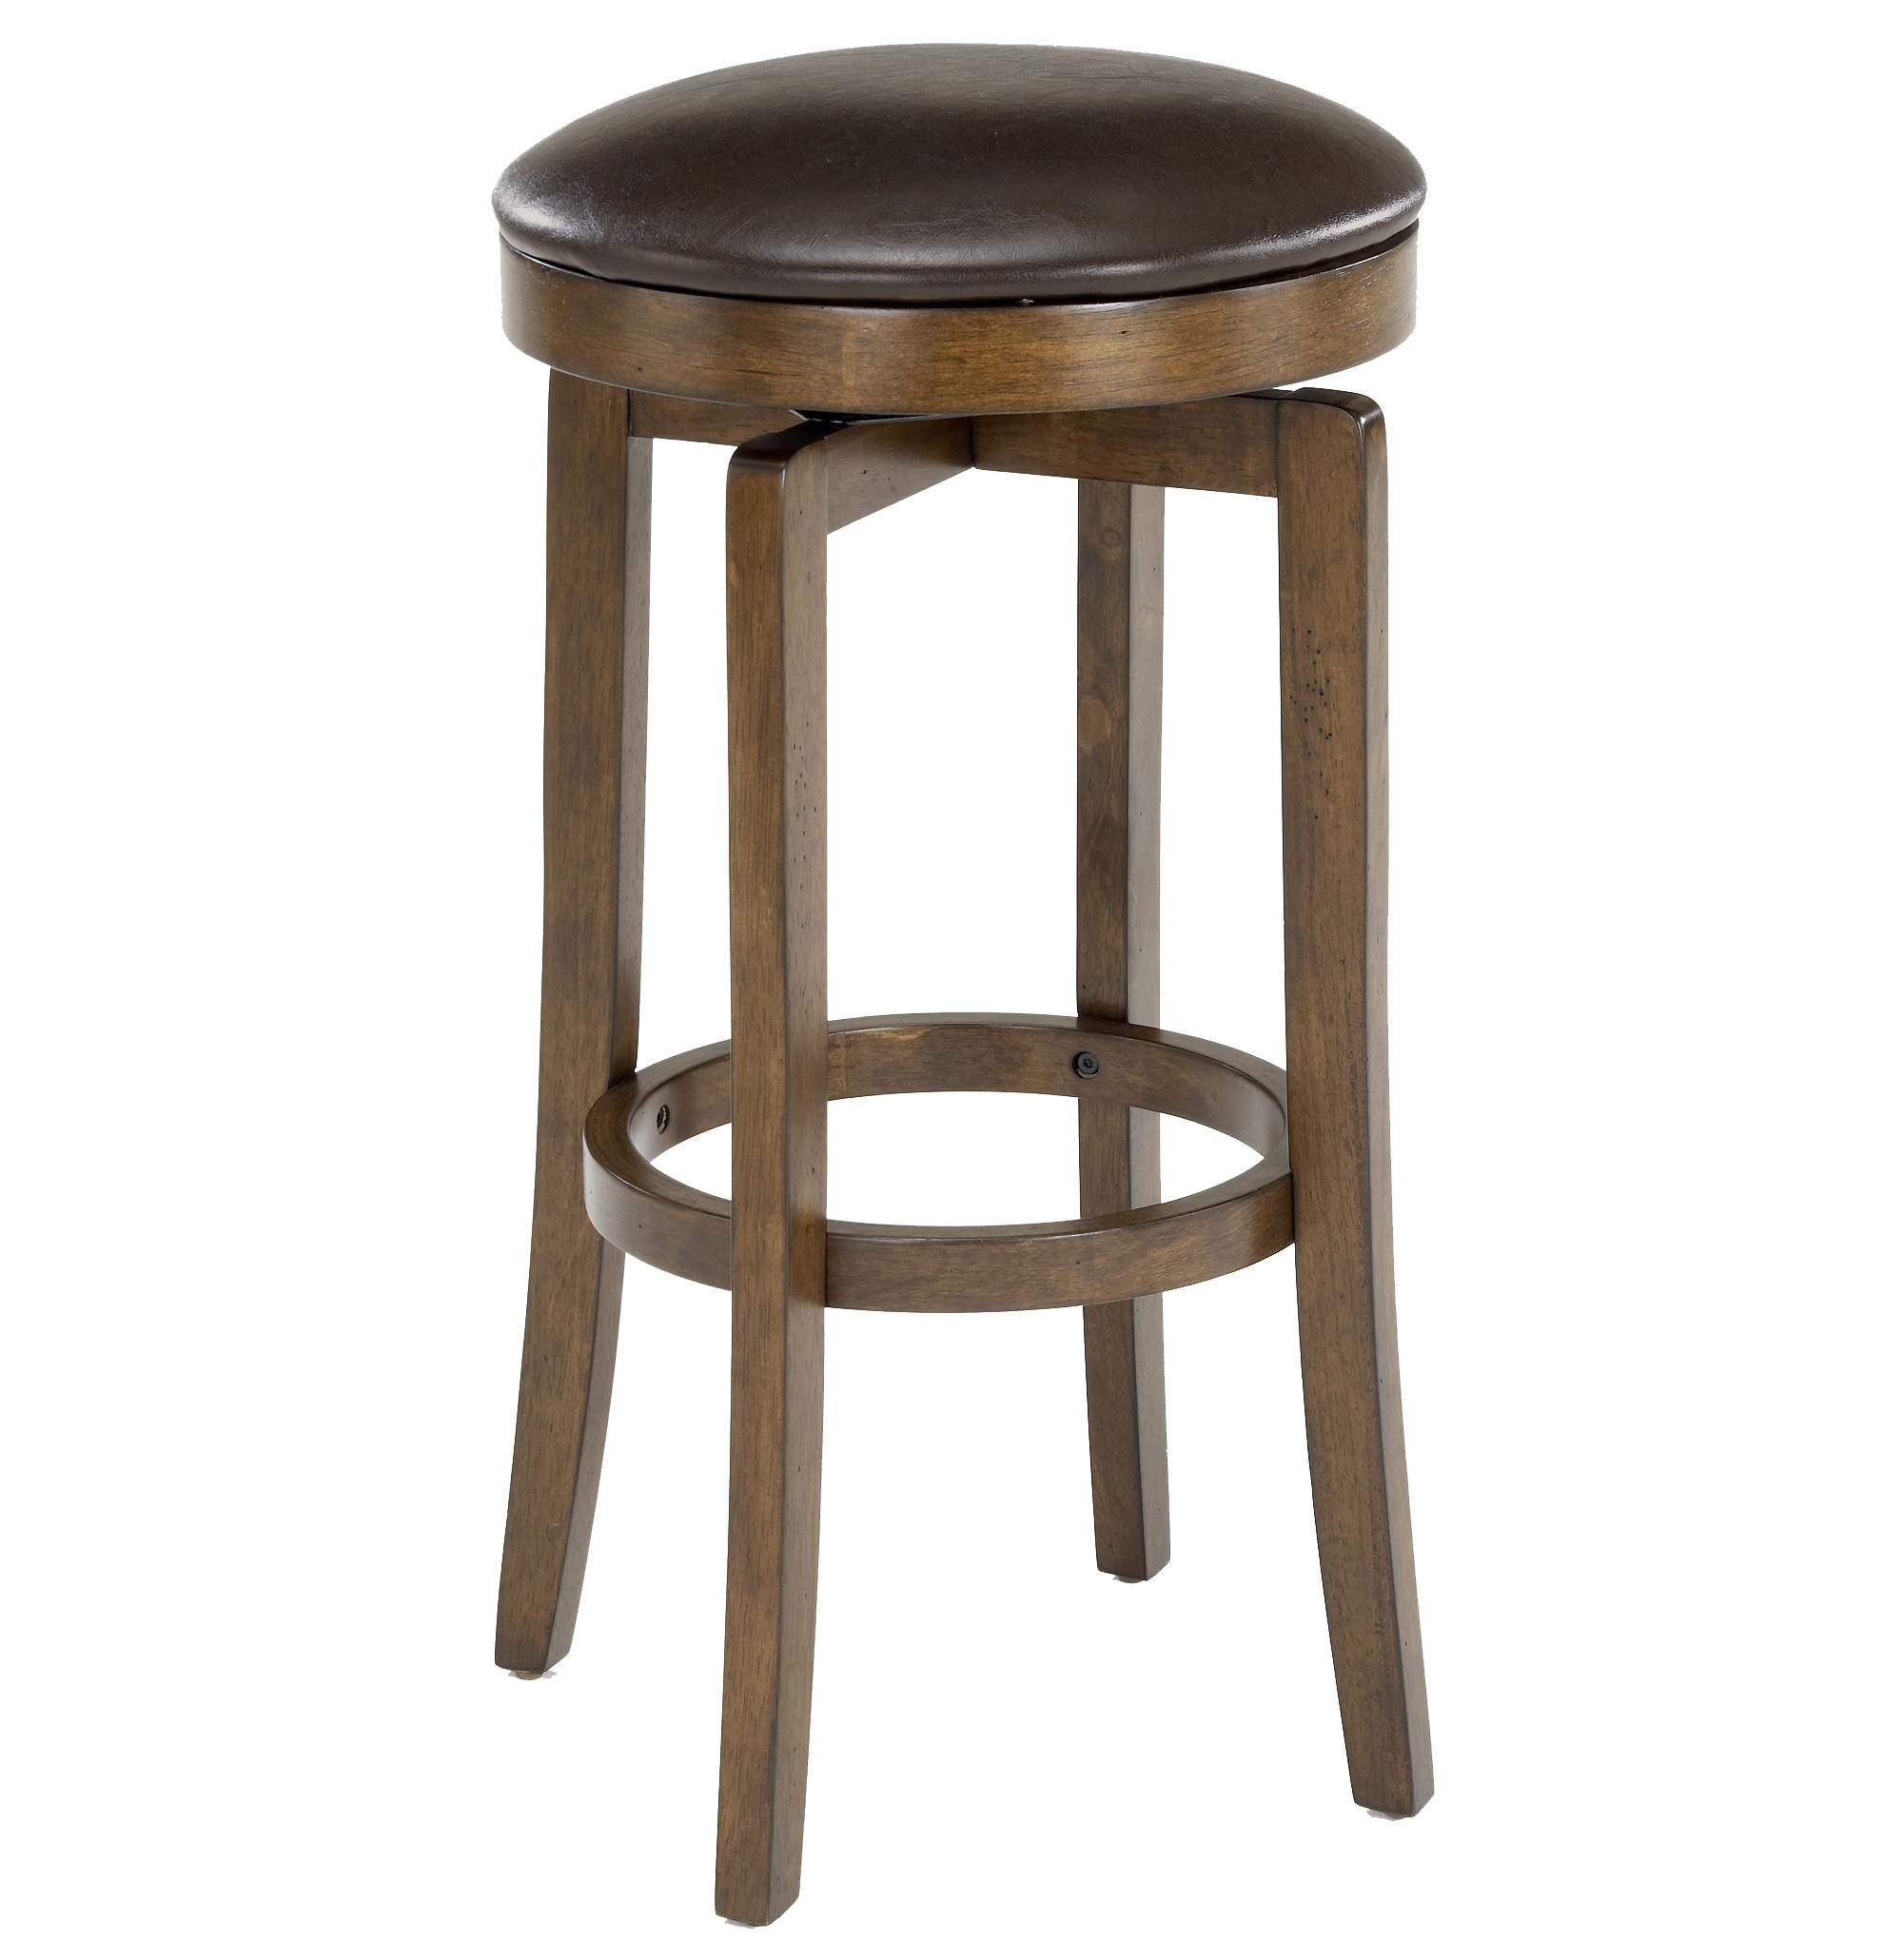 Quot brendan backless bar stool by hillsdale wolf and